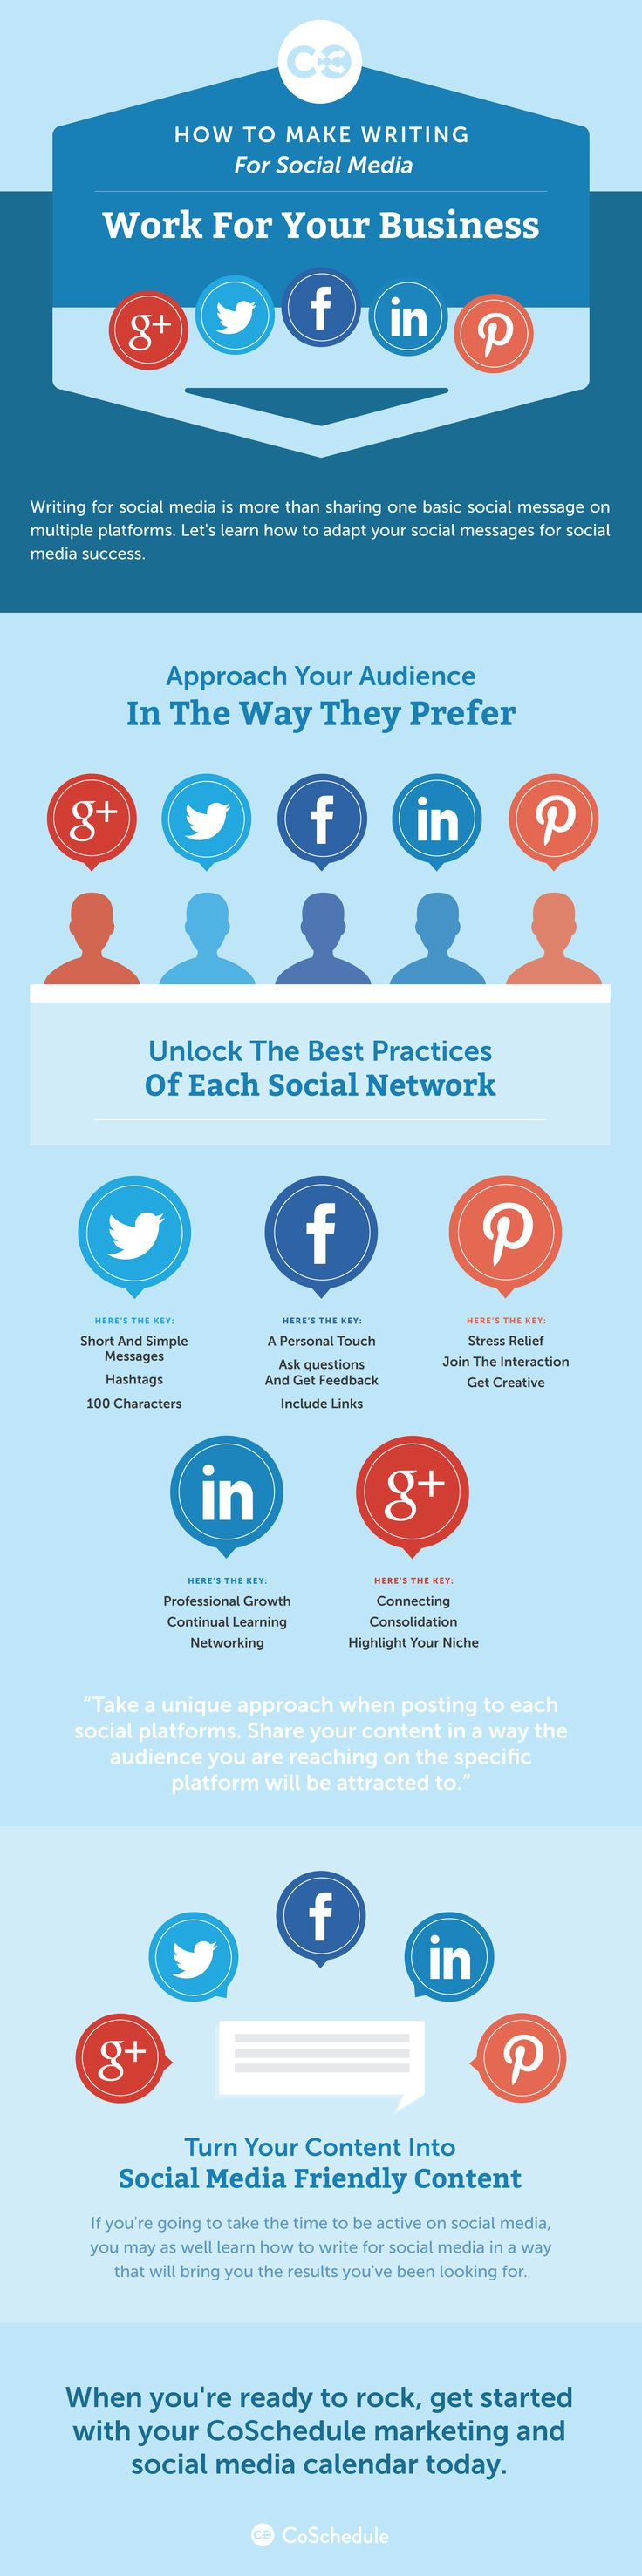 How To Make Writing For Social Media Work For Your Business: The Ultimate Infographic